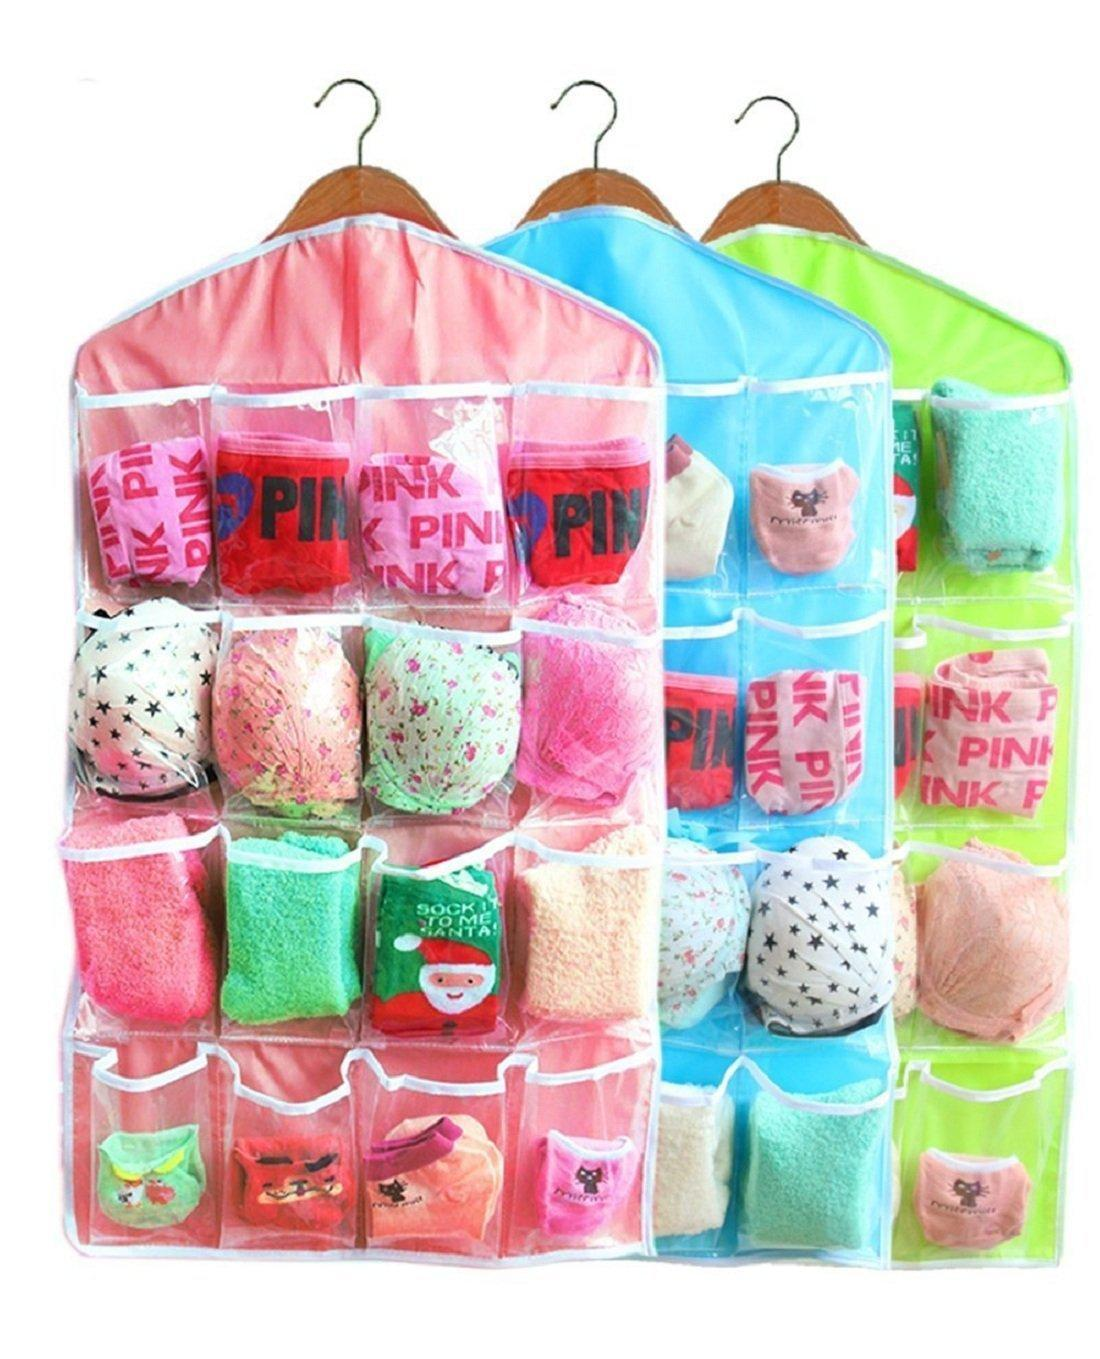 Sweet Candy Color Wardrobe Wall Mounted 16 Grid Storage Bag For Clothing Socks Pants And Stuffed Plush Toys